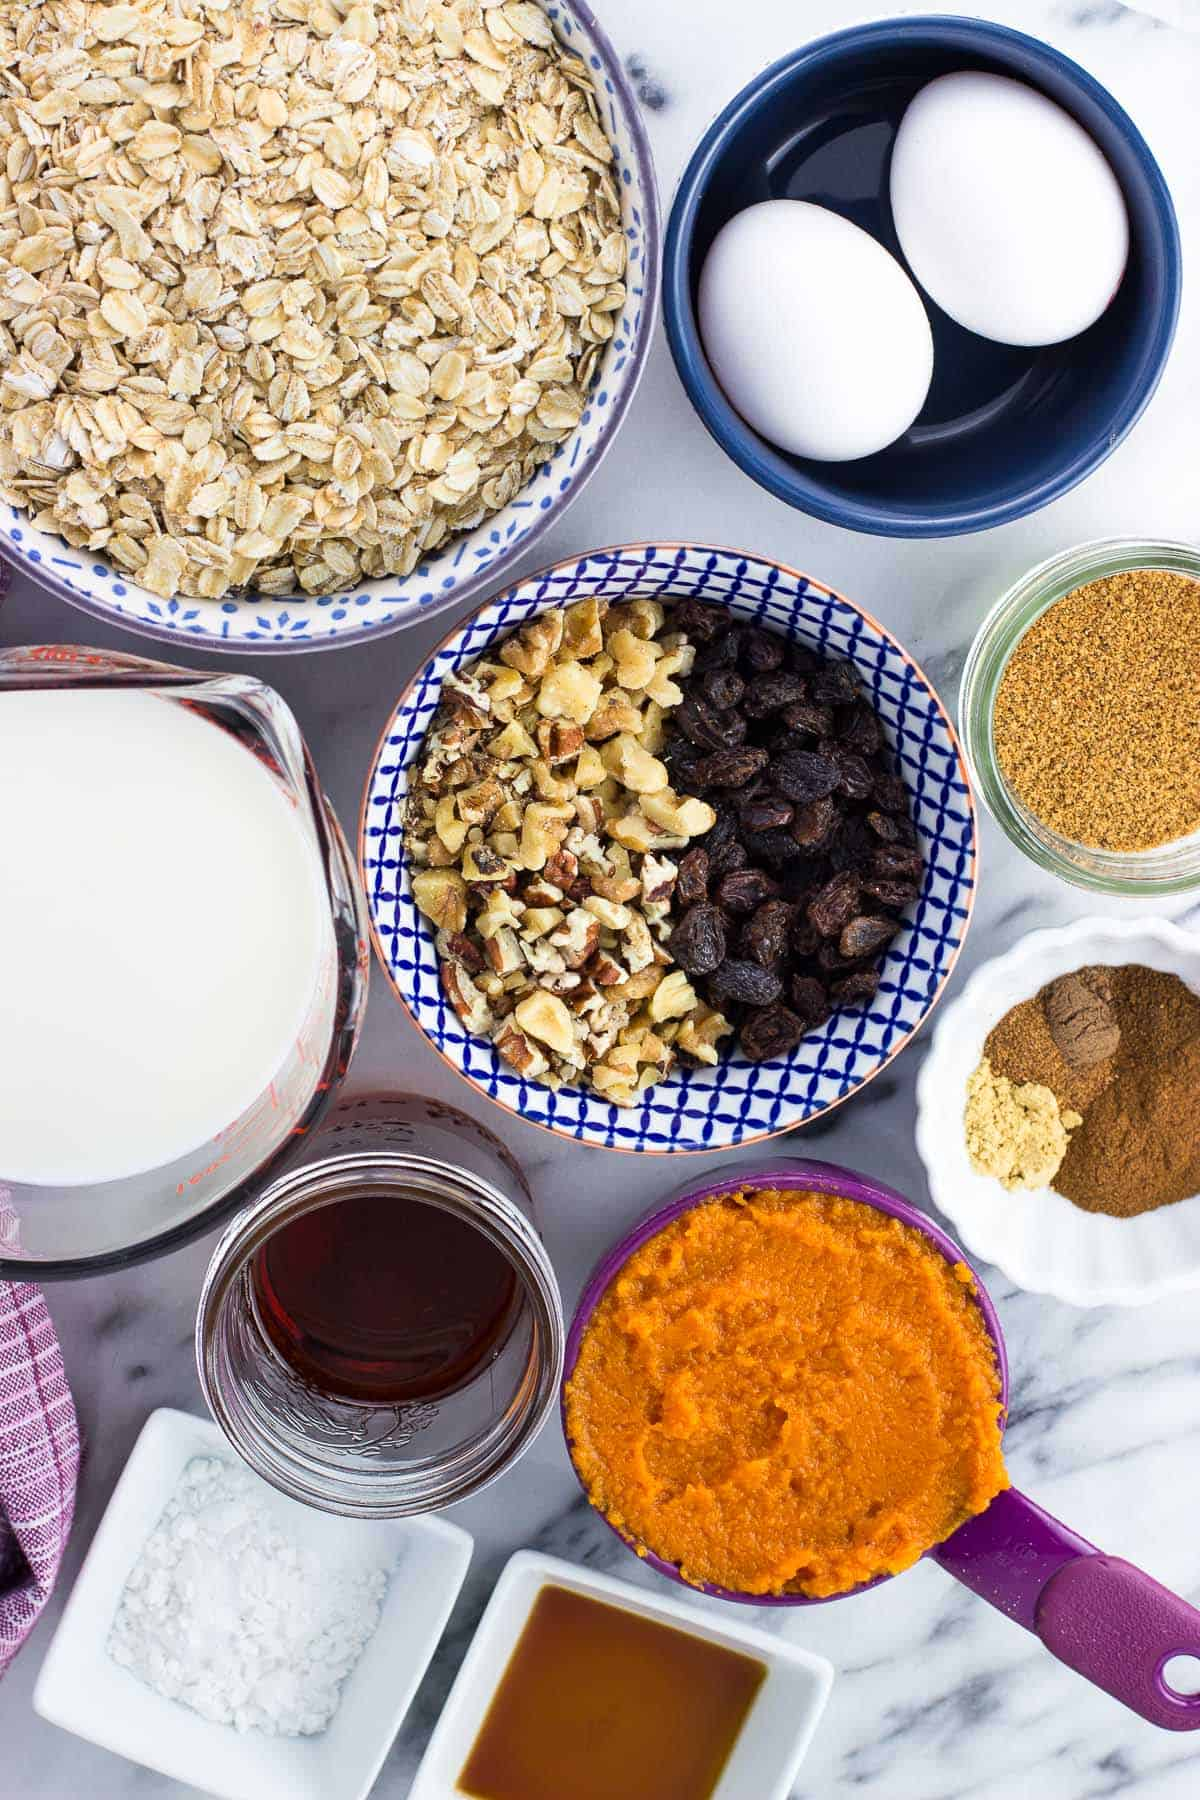 All recipe ingredients in separate jars, bowls, and measuring cups on a marble board